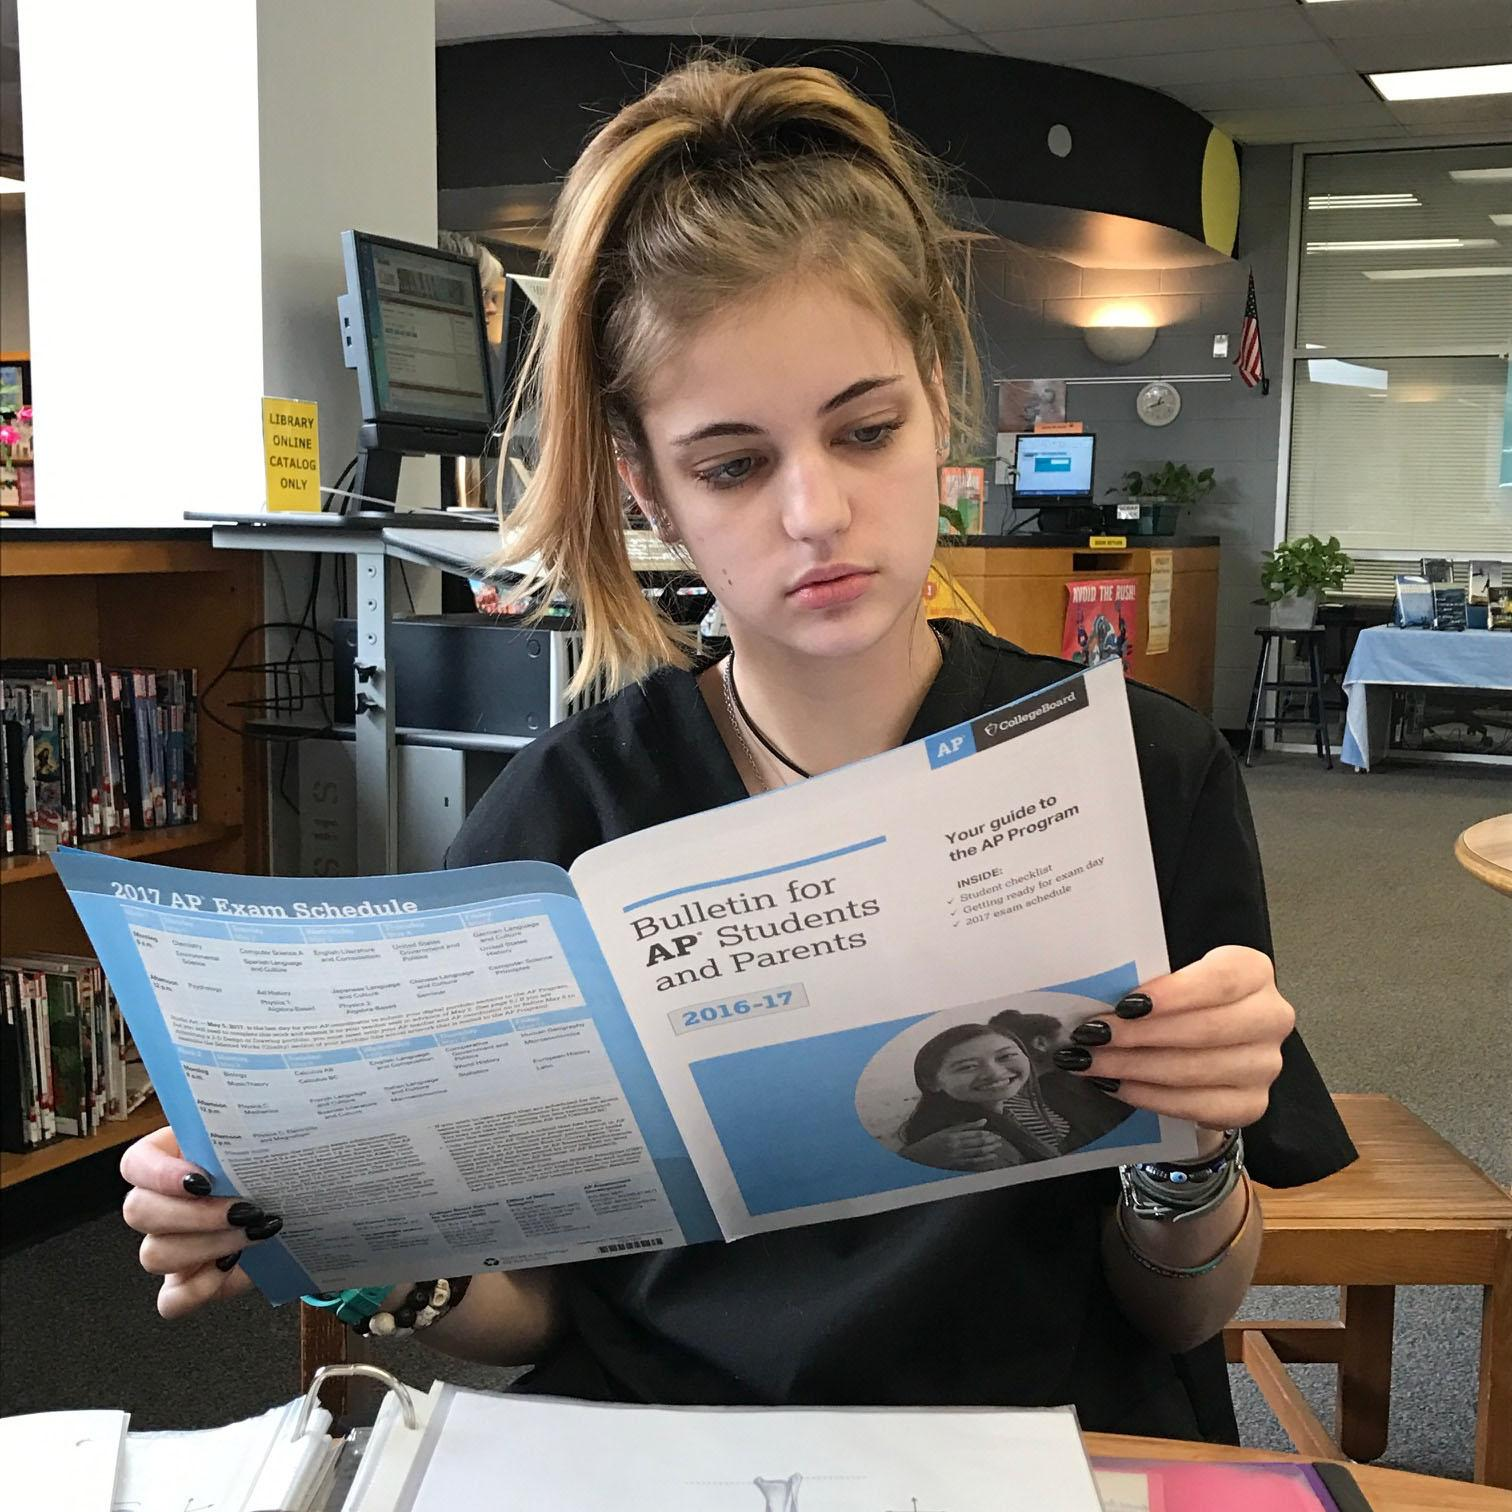 Senior Elise Roberts reads over the Bulletin for AP Students and Parents. It contains essential information such as what to expect, the 2017 testing schedule, and what to bring to for testing.